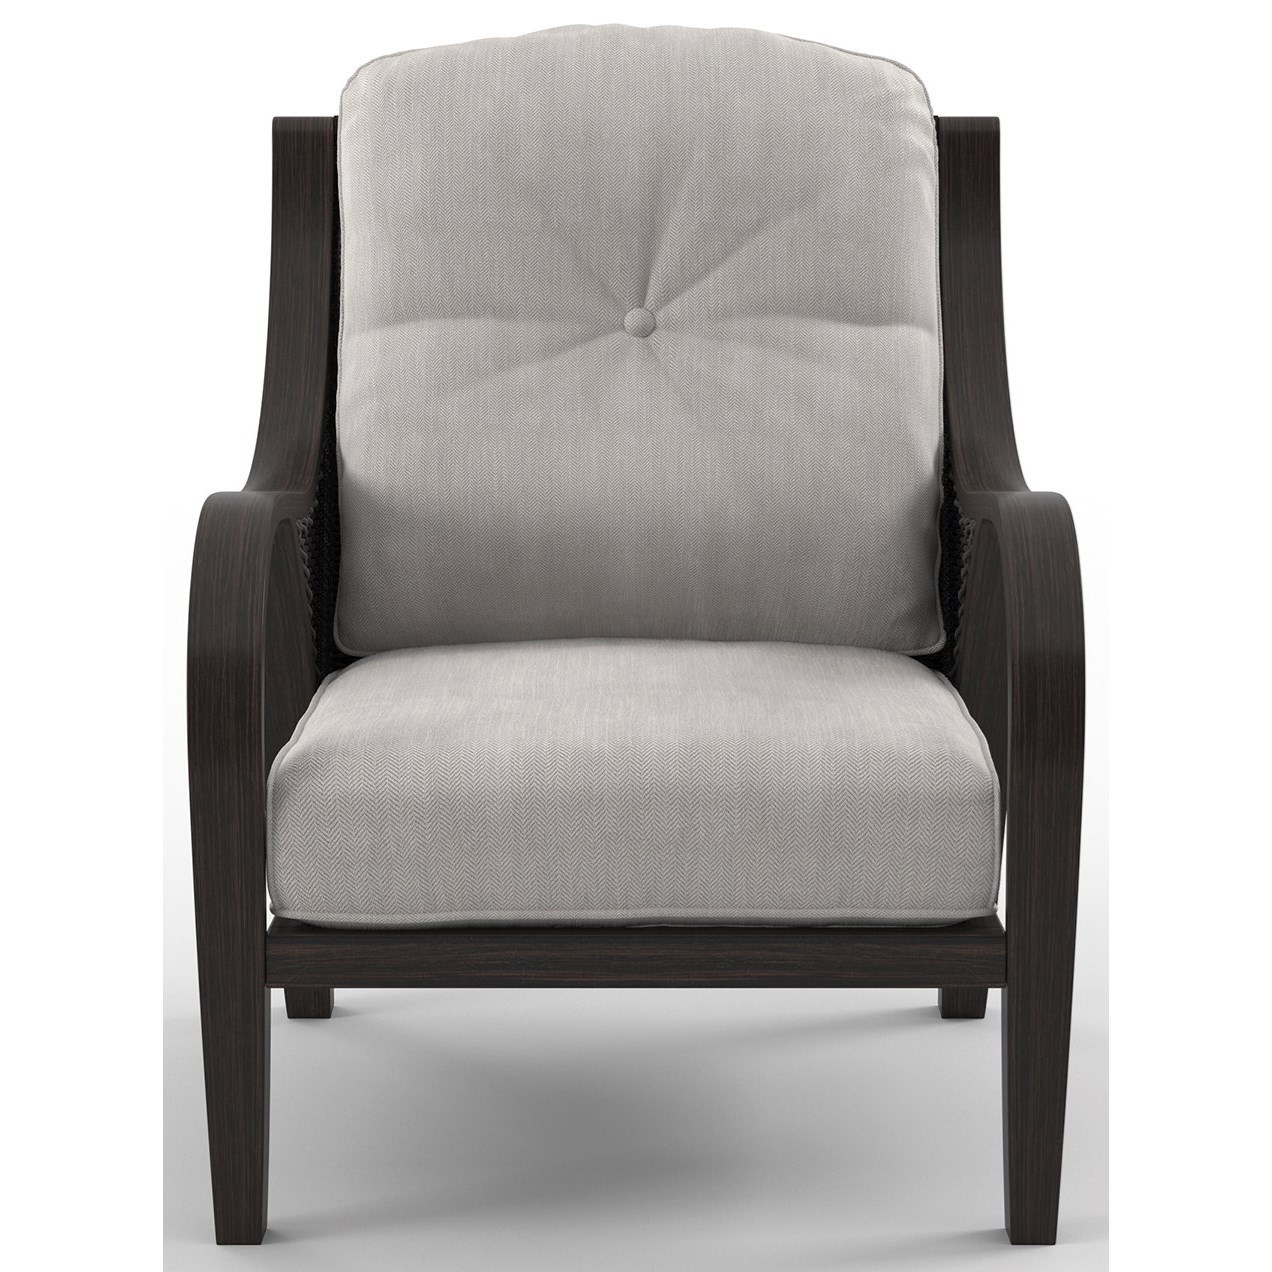 Marsh Creek Set of 2 Lounge Chairs with Cushion by Signature Design by Ashley at Lapeer Furniture & Mattress Center